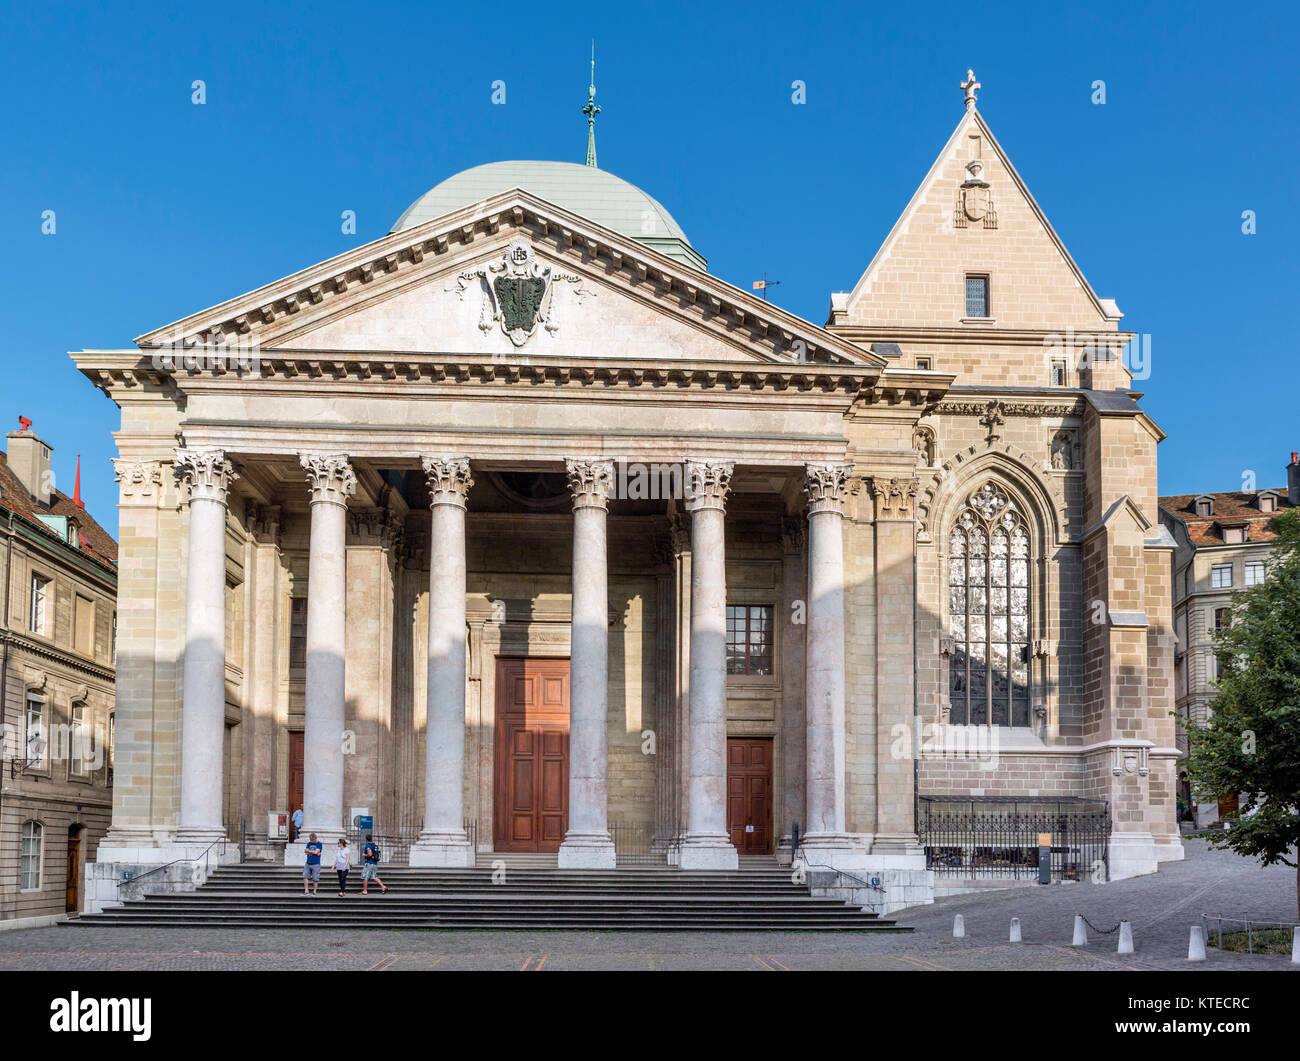 Front of St Pierre Cathedral in the Old Town (Vieille Ville), Geneva (Geneve), Lake Geneva, Switzerland - Stock Image